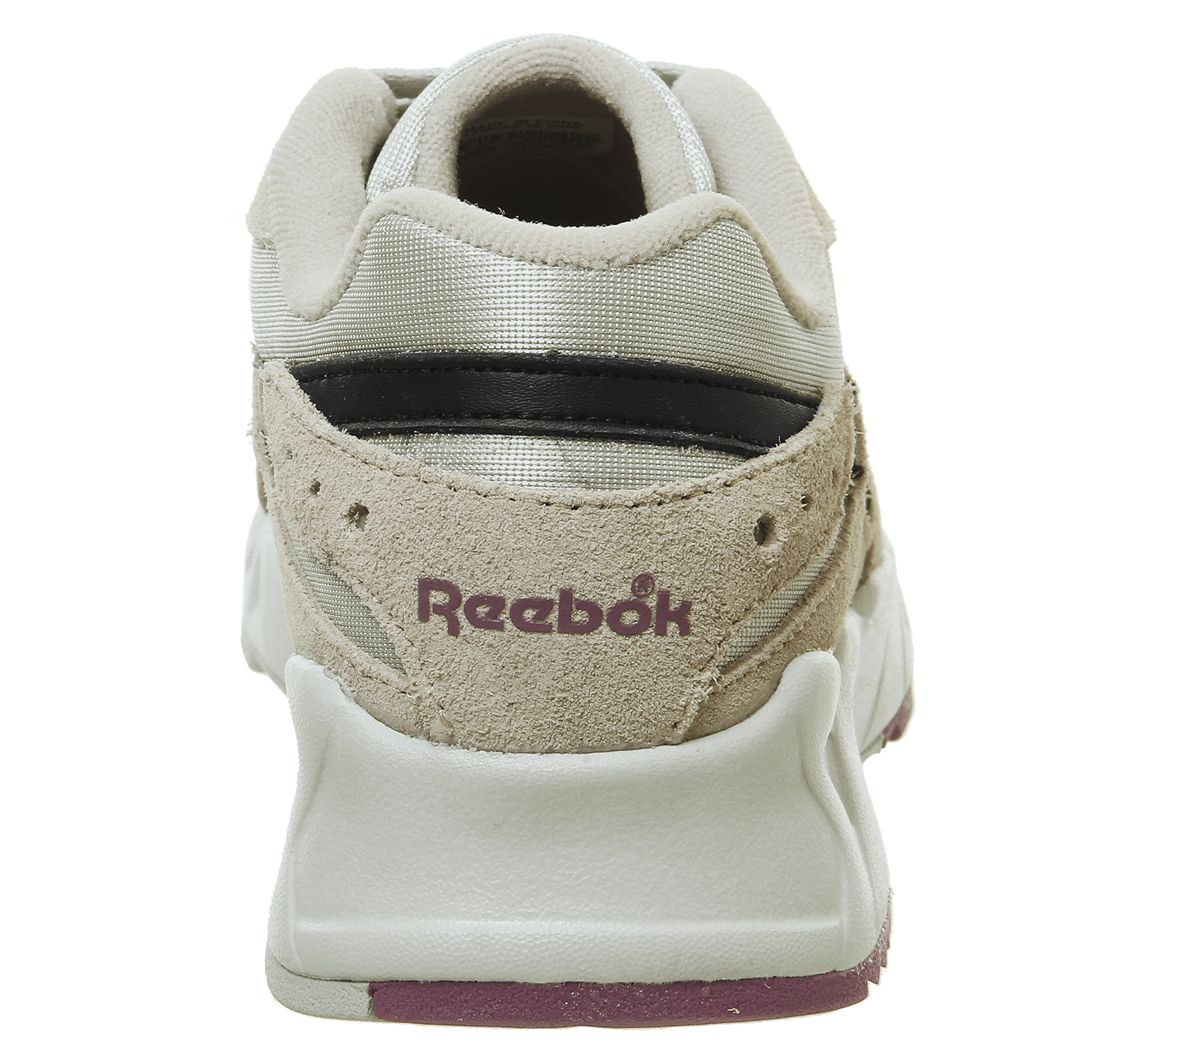 Details about Reebok Aztrek Og Trainers Outdoor Coldgry Sand Powder Grey Trainers Shoes